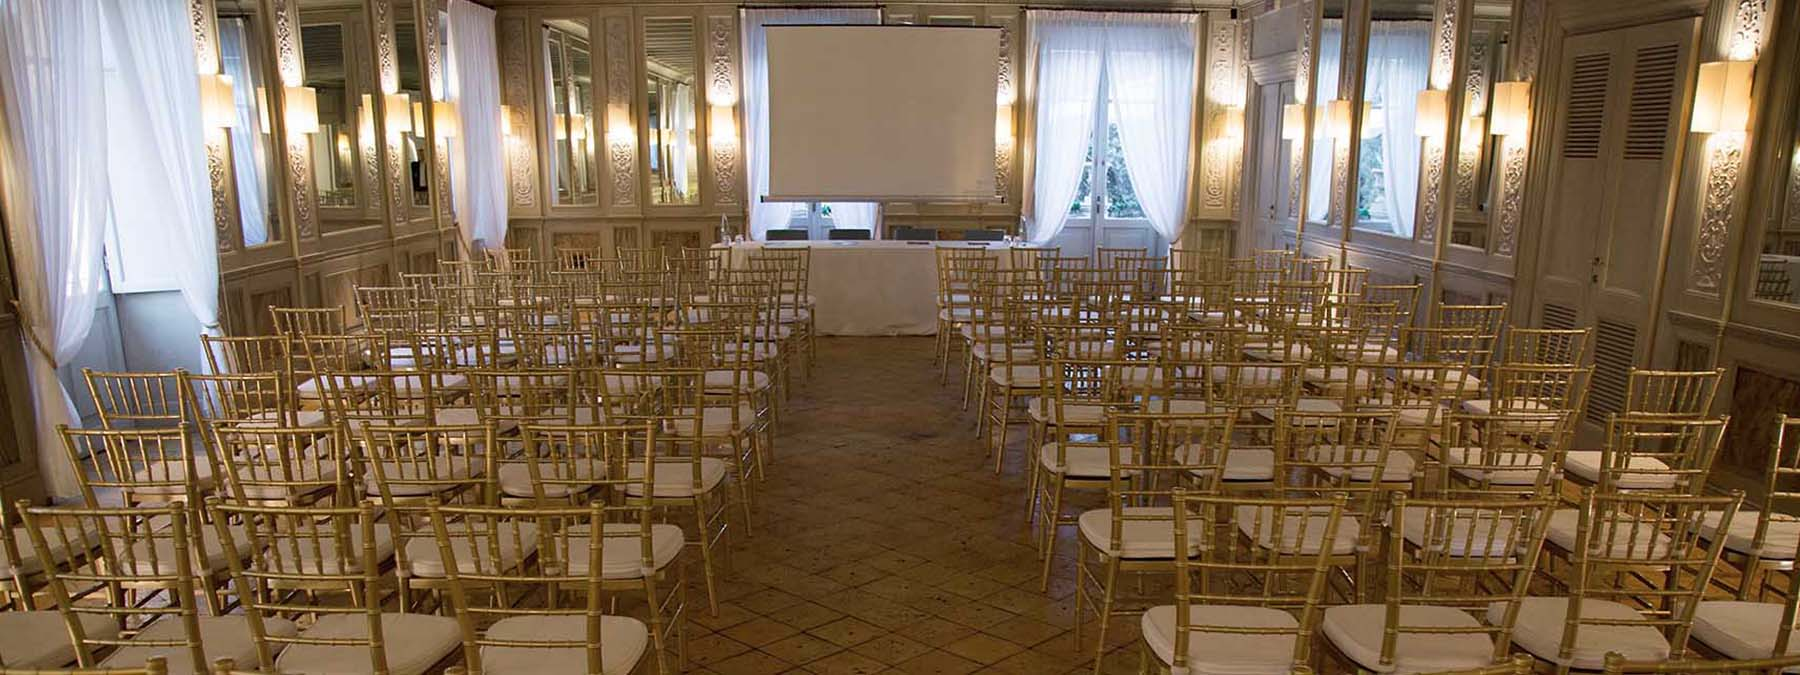 location per conferenze stampa - casina valadier